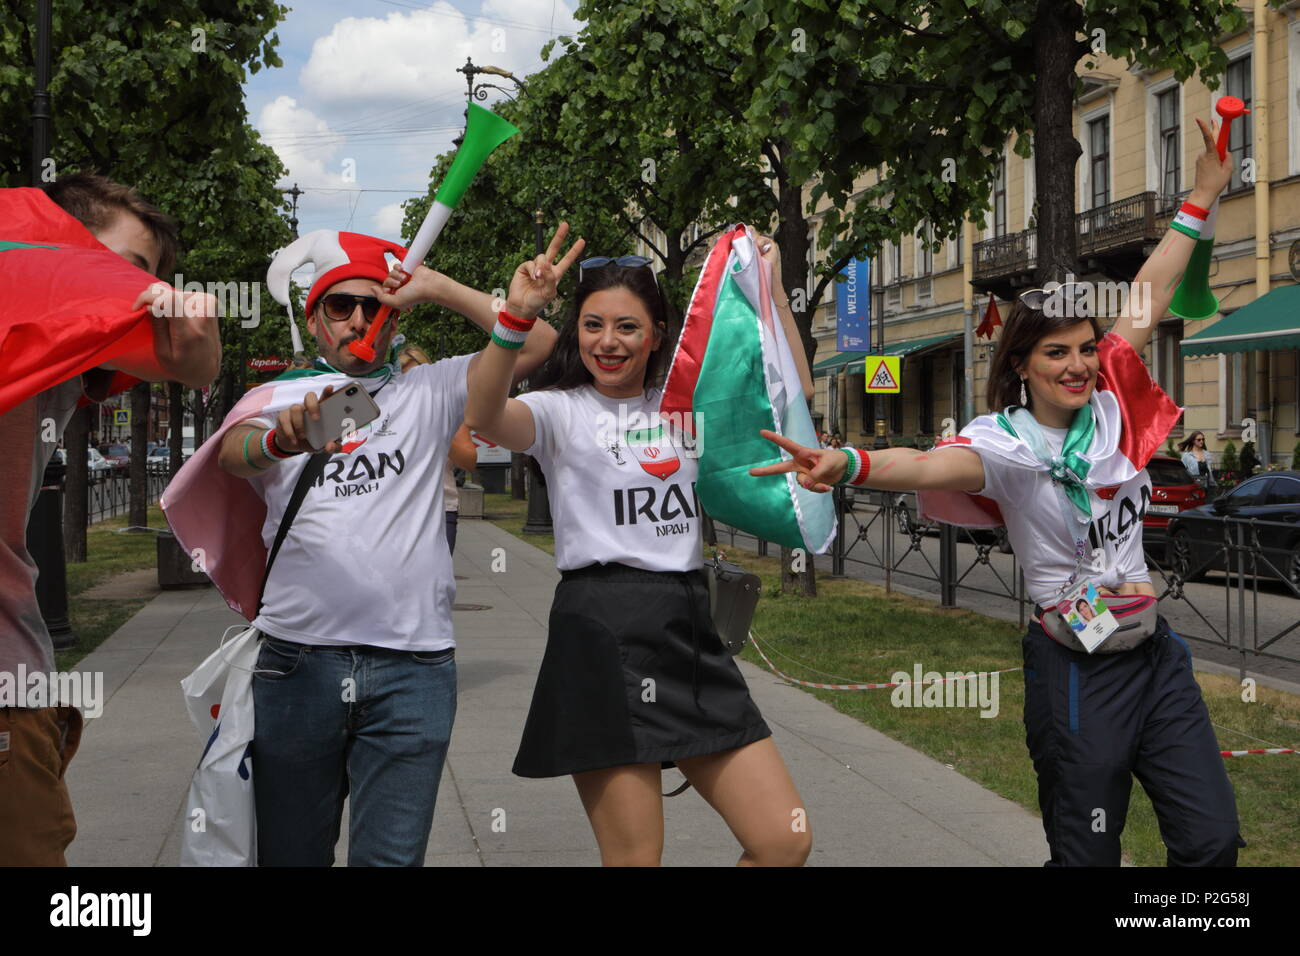 St. Petersburg, Russia, 15th June, 2018. Iranian football fans in Saint-Petersburg on the day of first match of FIFA World Cup 2018 in the city. It is the match Morocco vs Iran Credit: StockphotoVideo/Alamy Live News - Stock Image